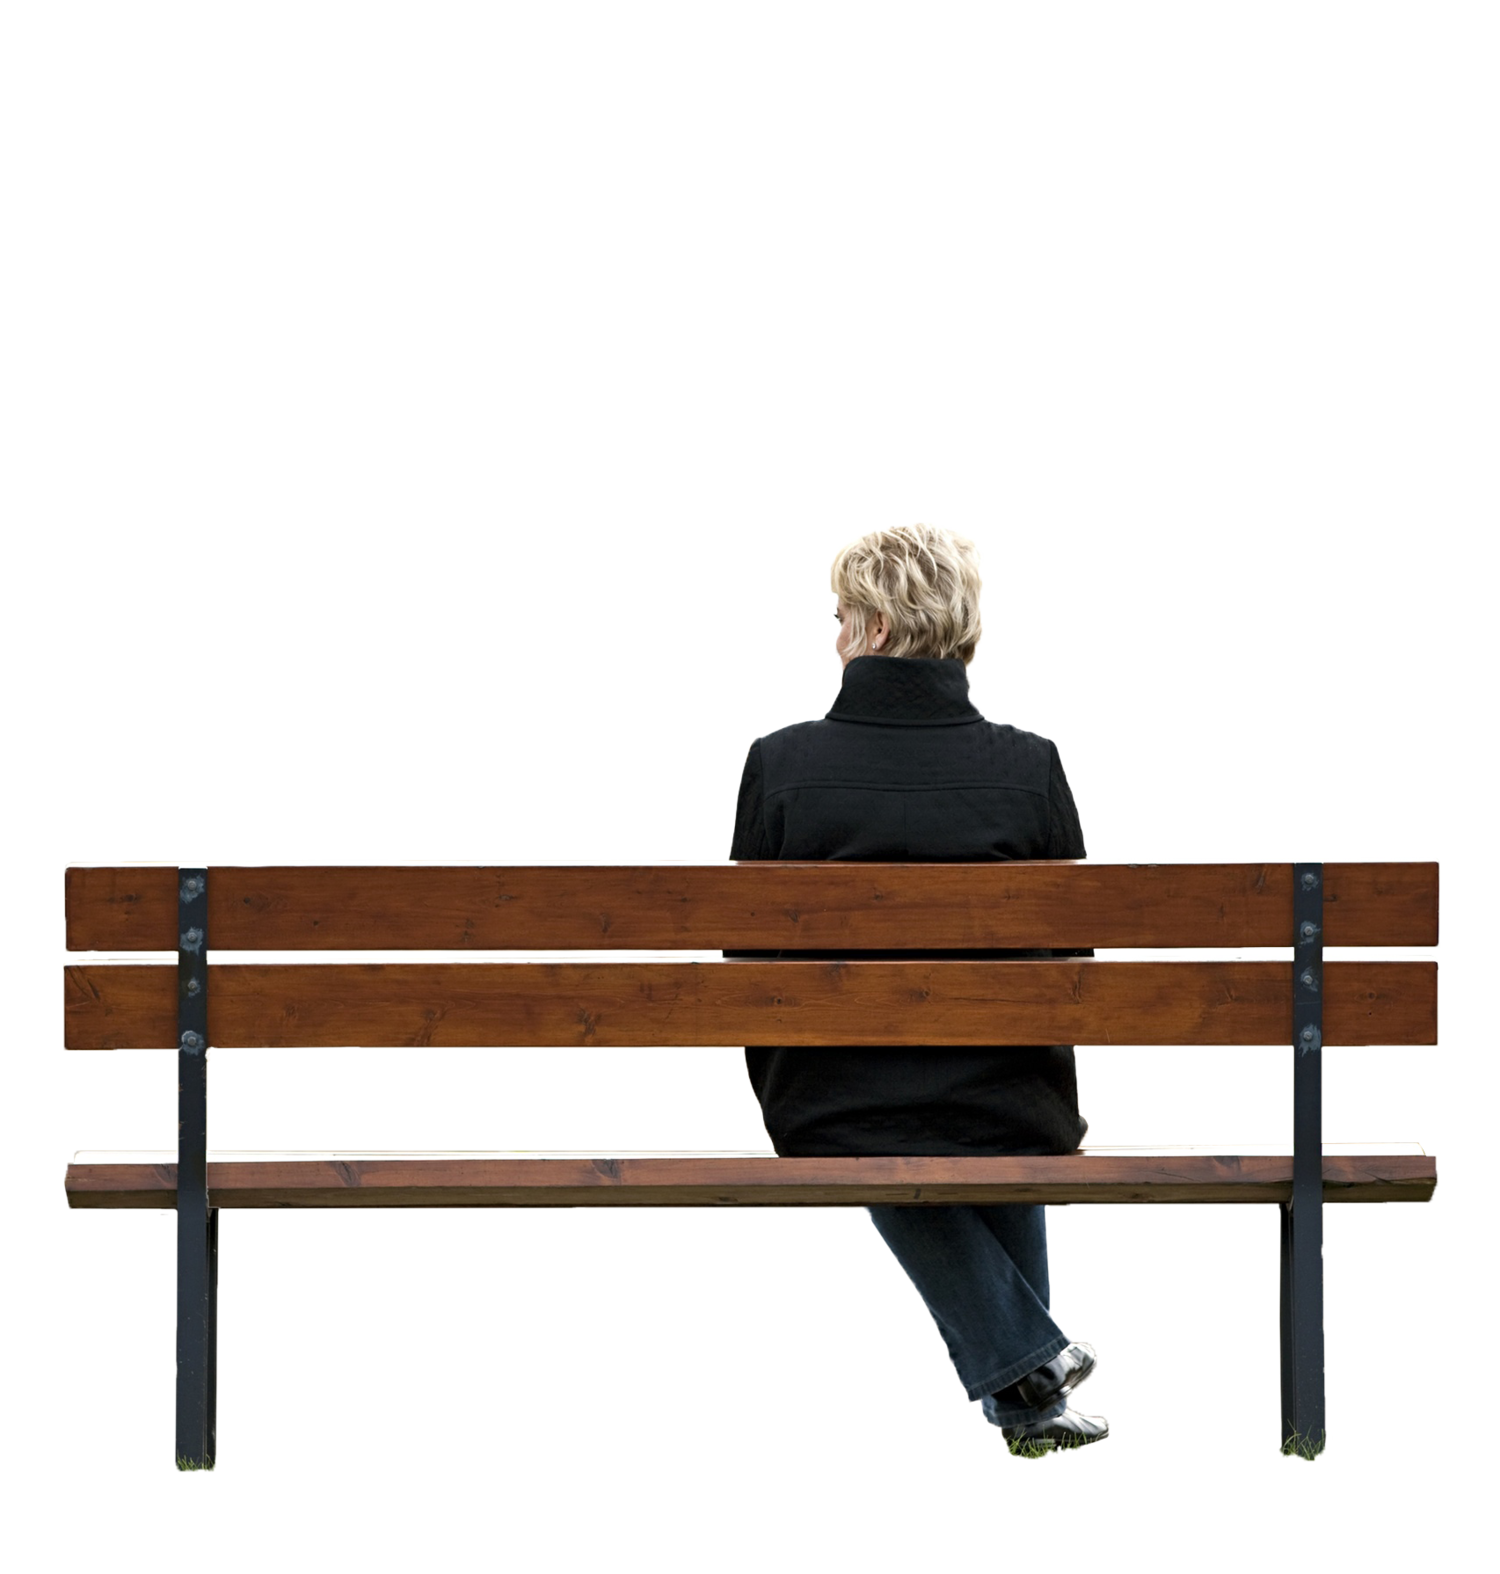 People sitting on bench png. Nsc cutout stuff pinterest